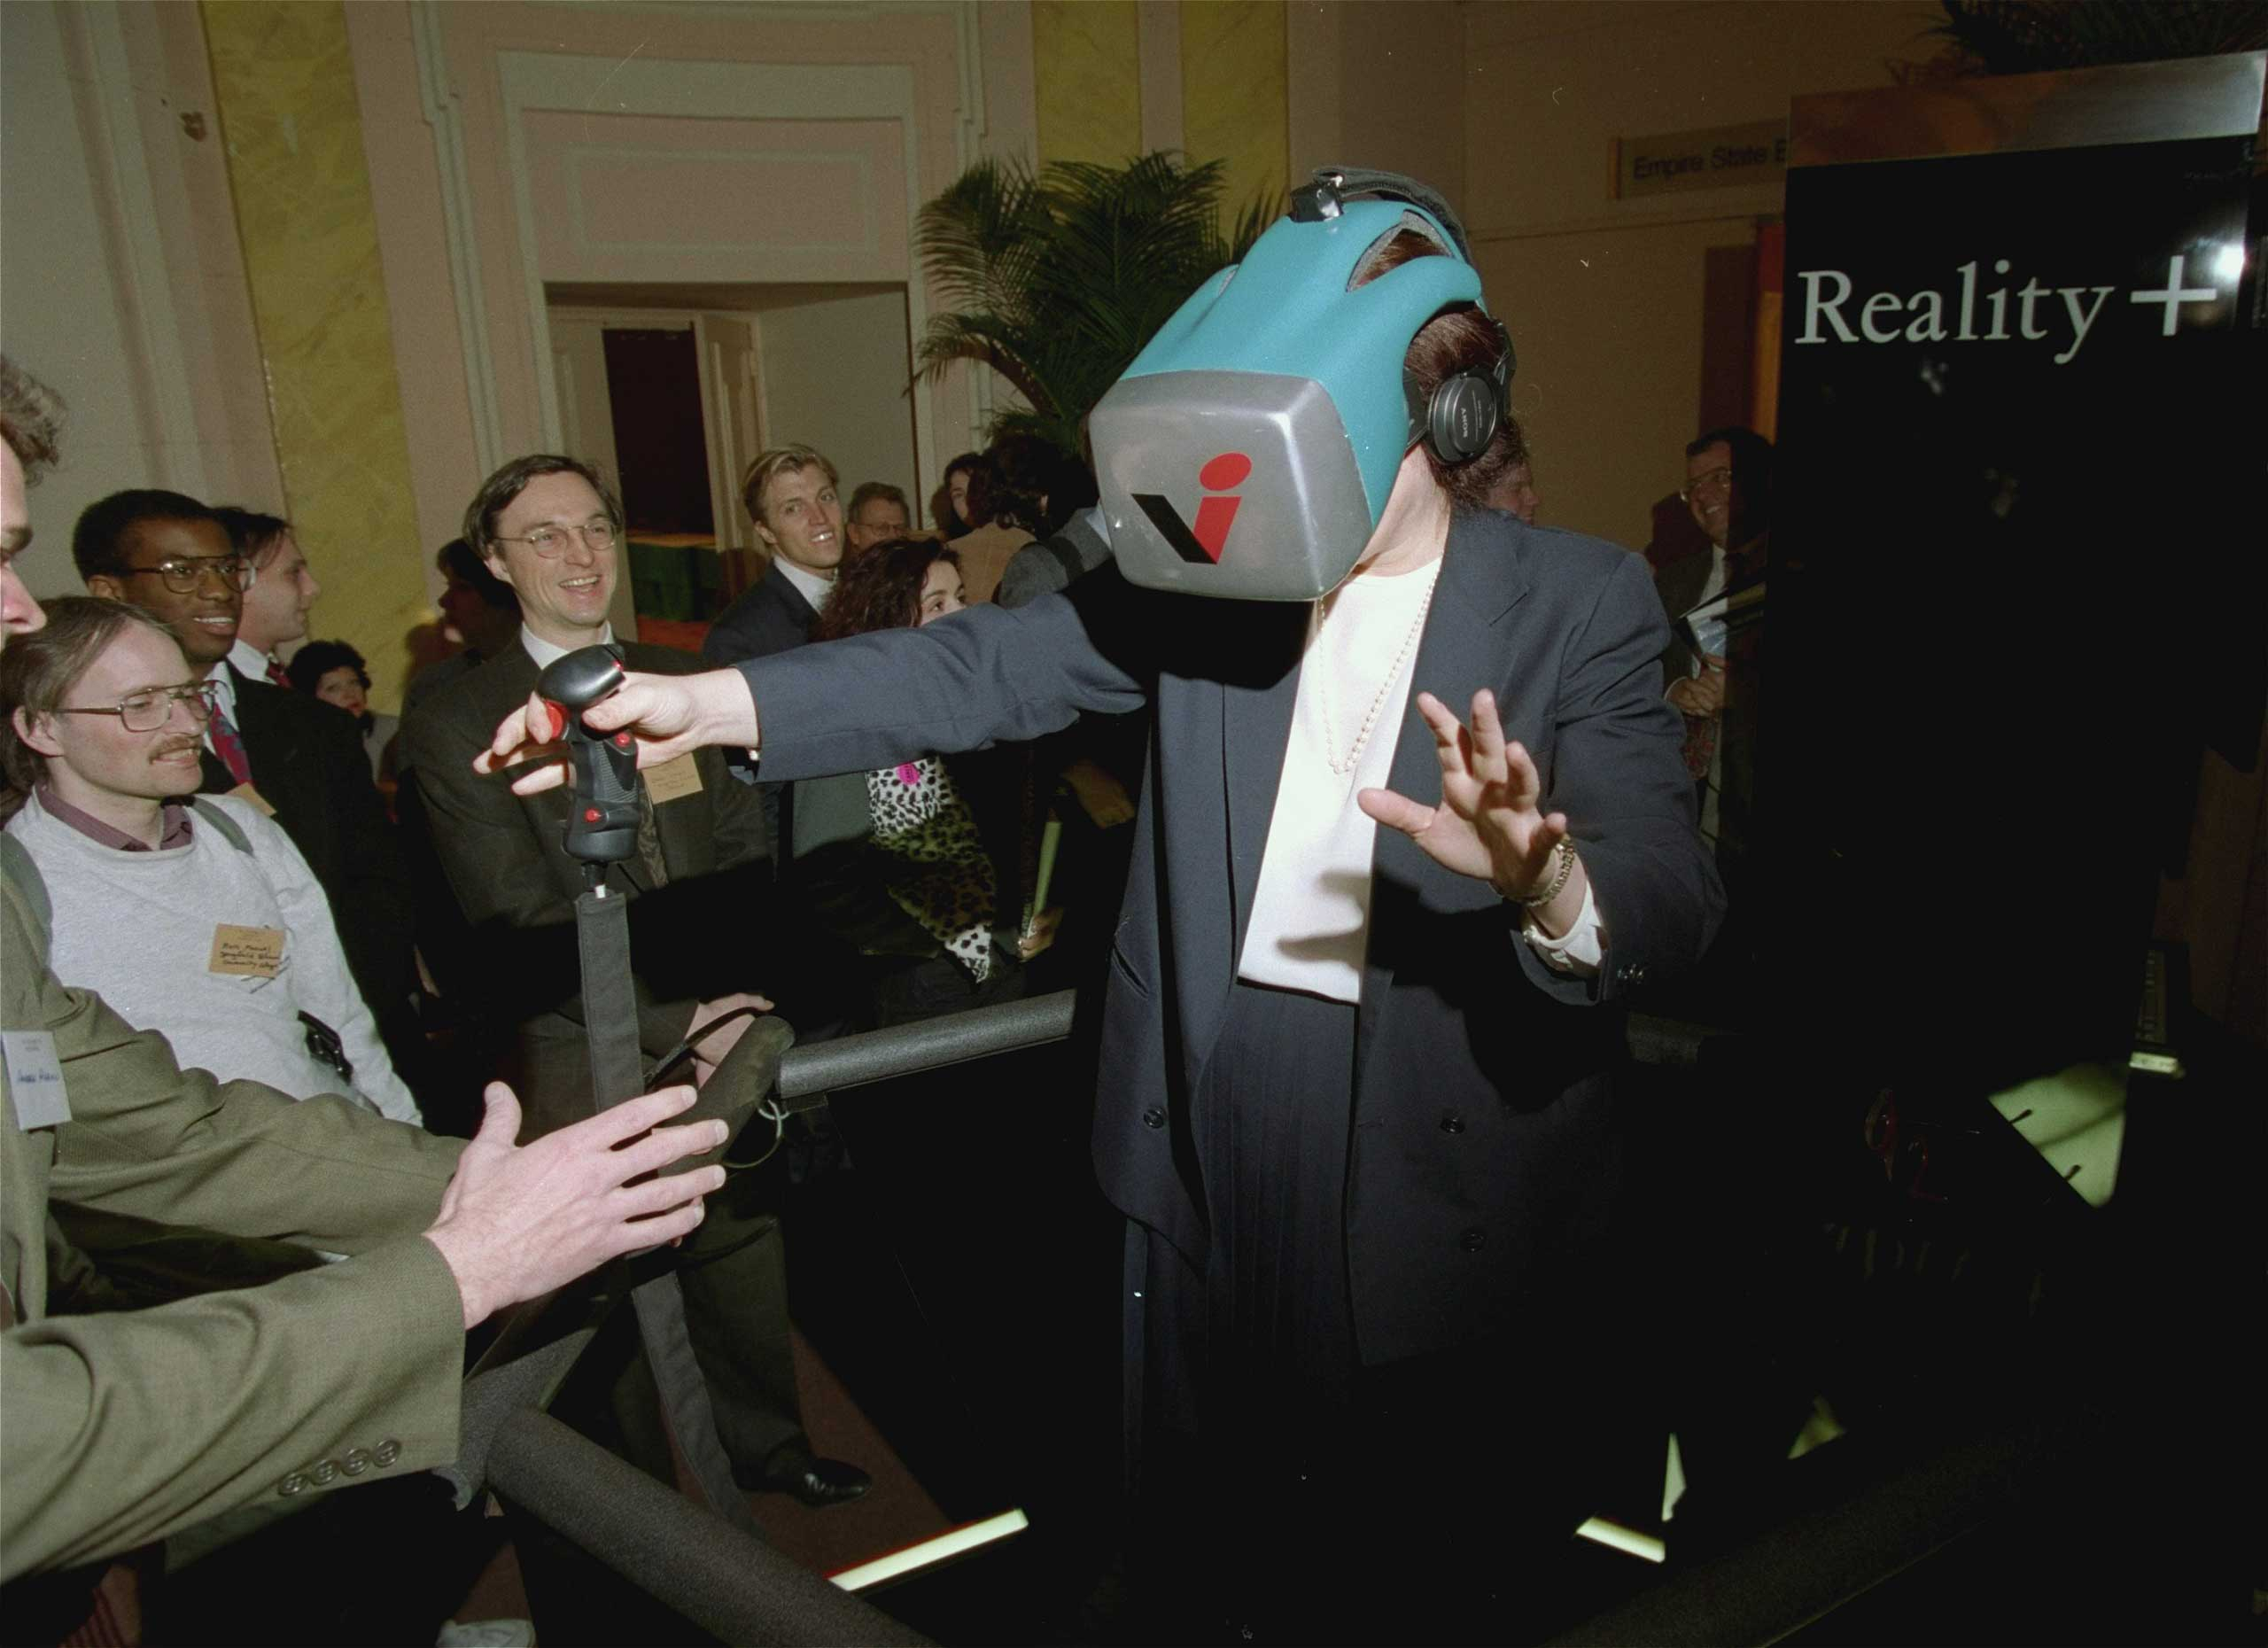 1993                                                               Reality +  at the Virtual Reality Systems 93 show was described as a next generation, multi-player virtual reality entertainment system that gave a high sense of movement in a computer-generated world revealed in a head-mounted display.